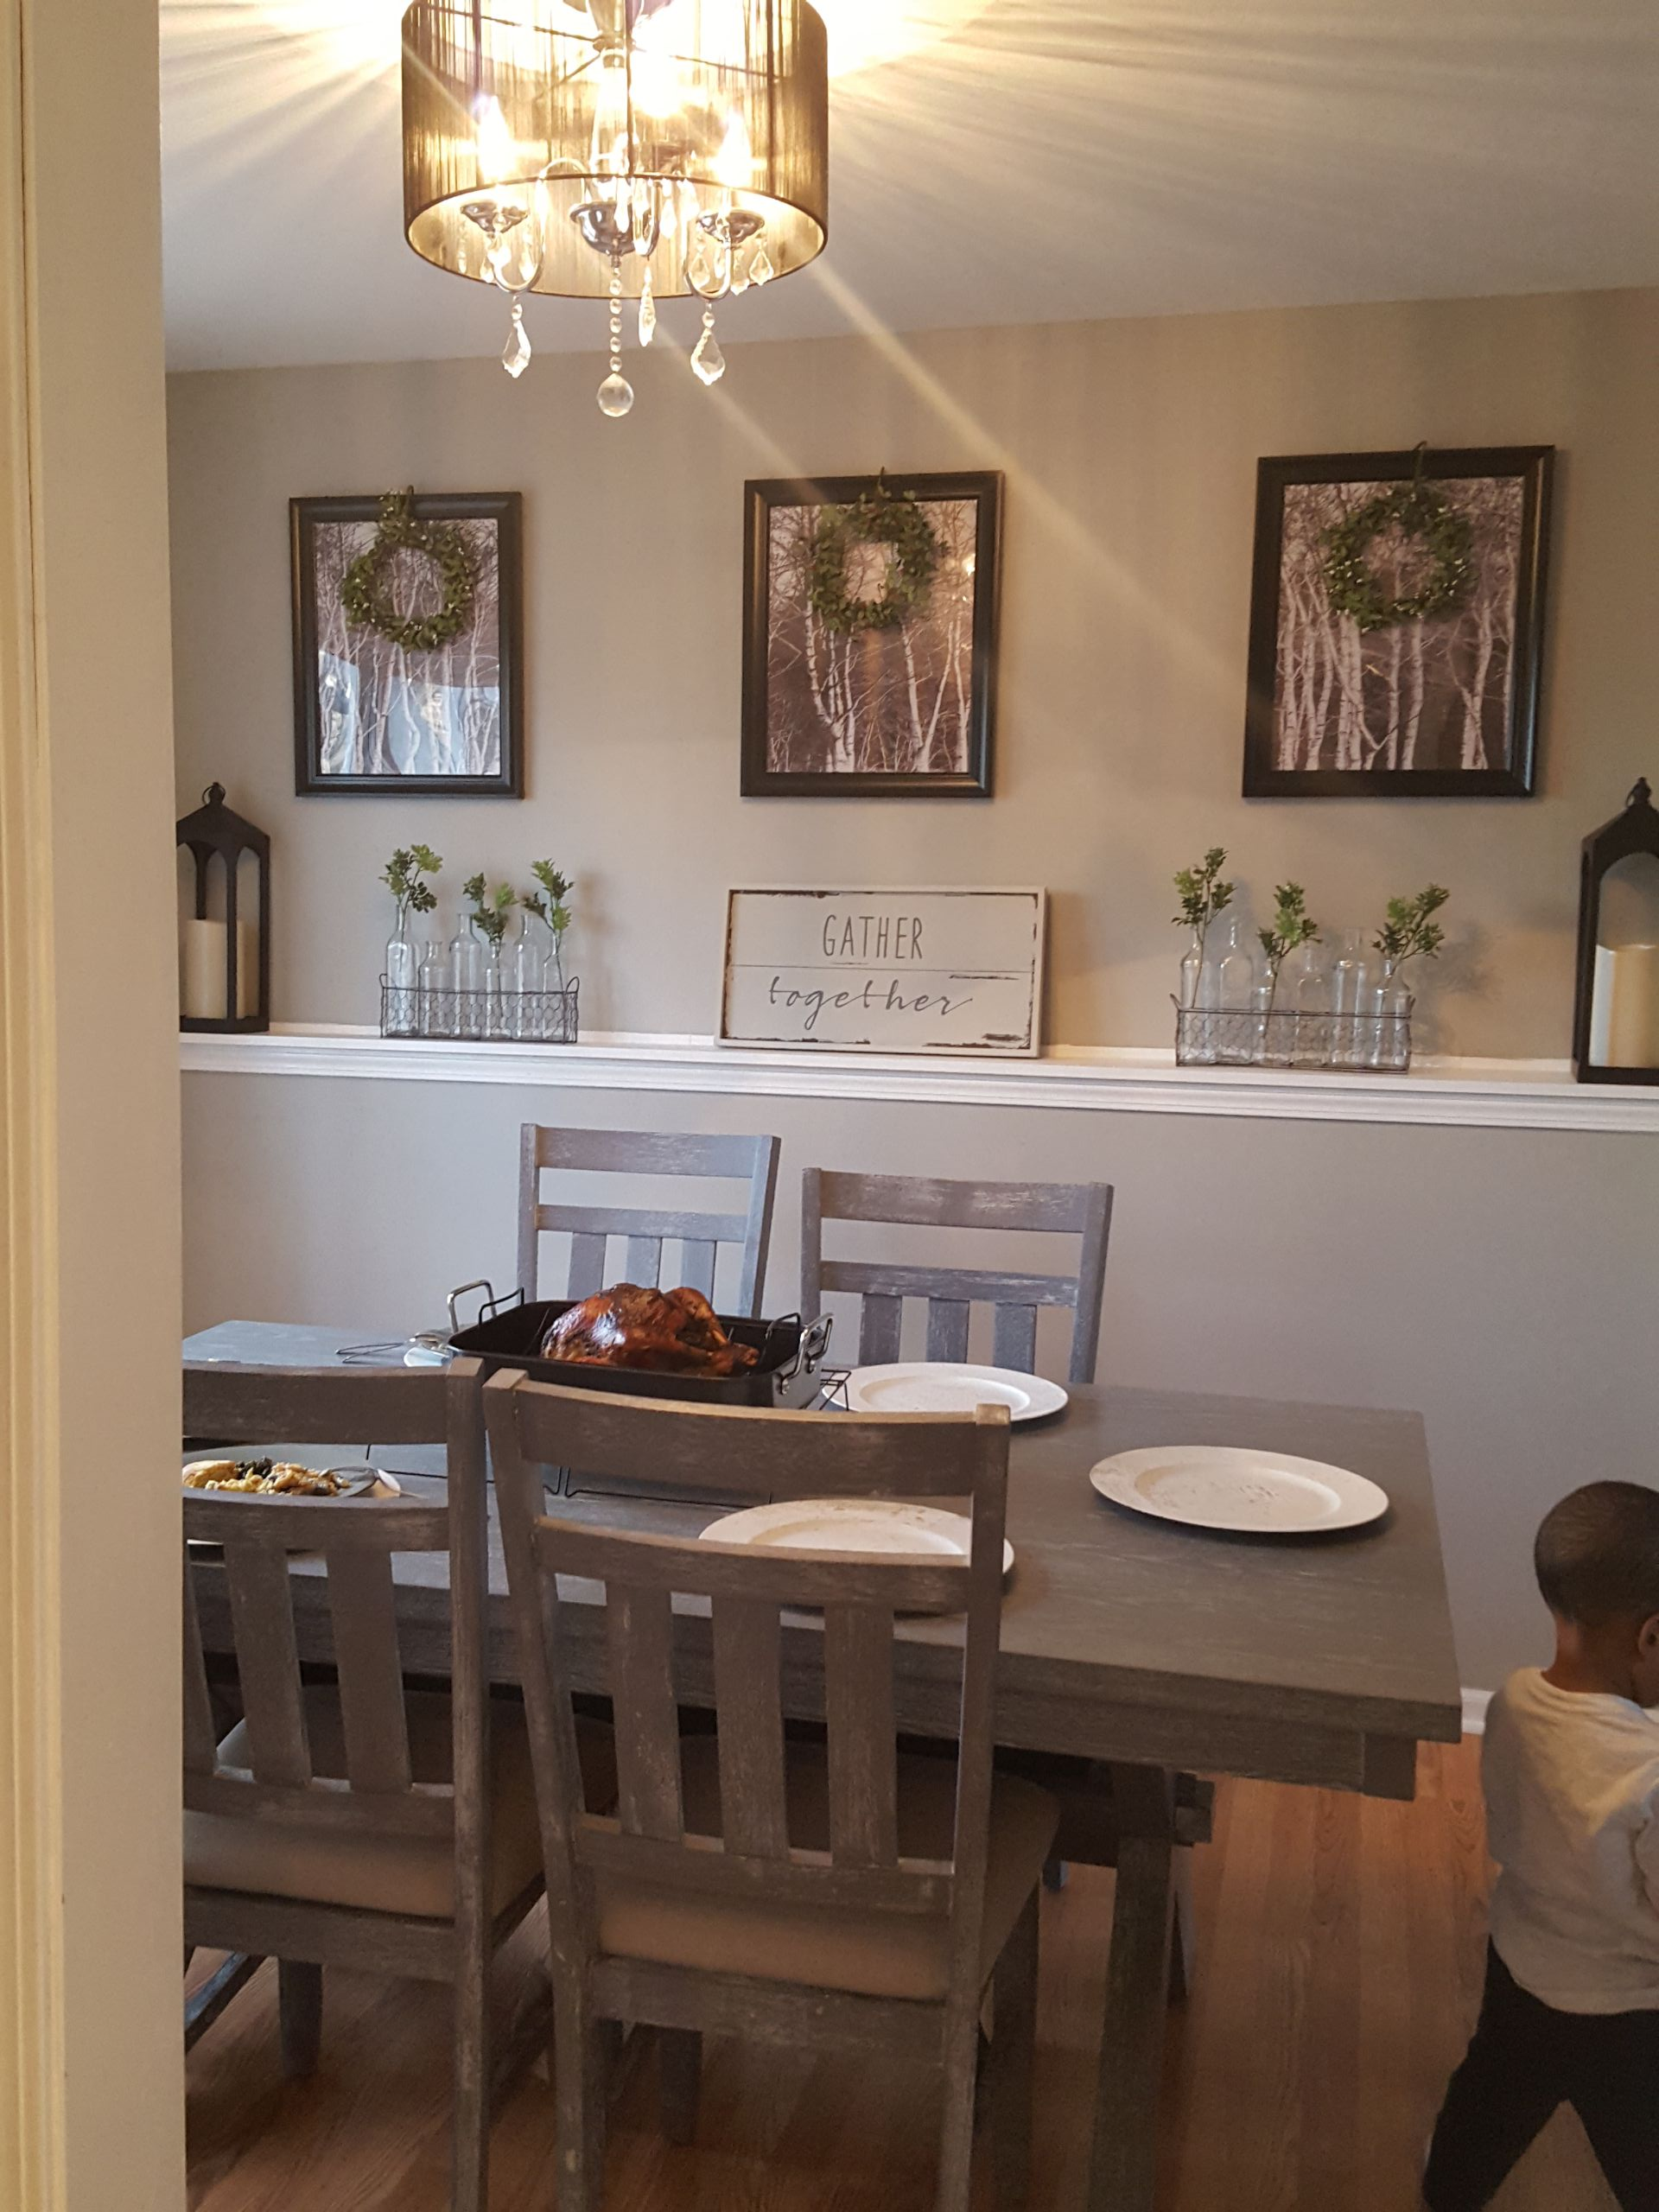 Our Dining Room Renovation